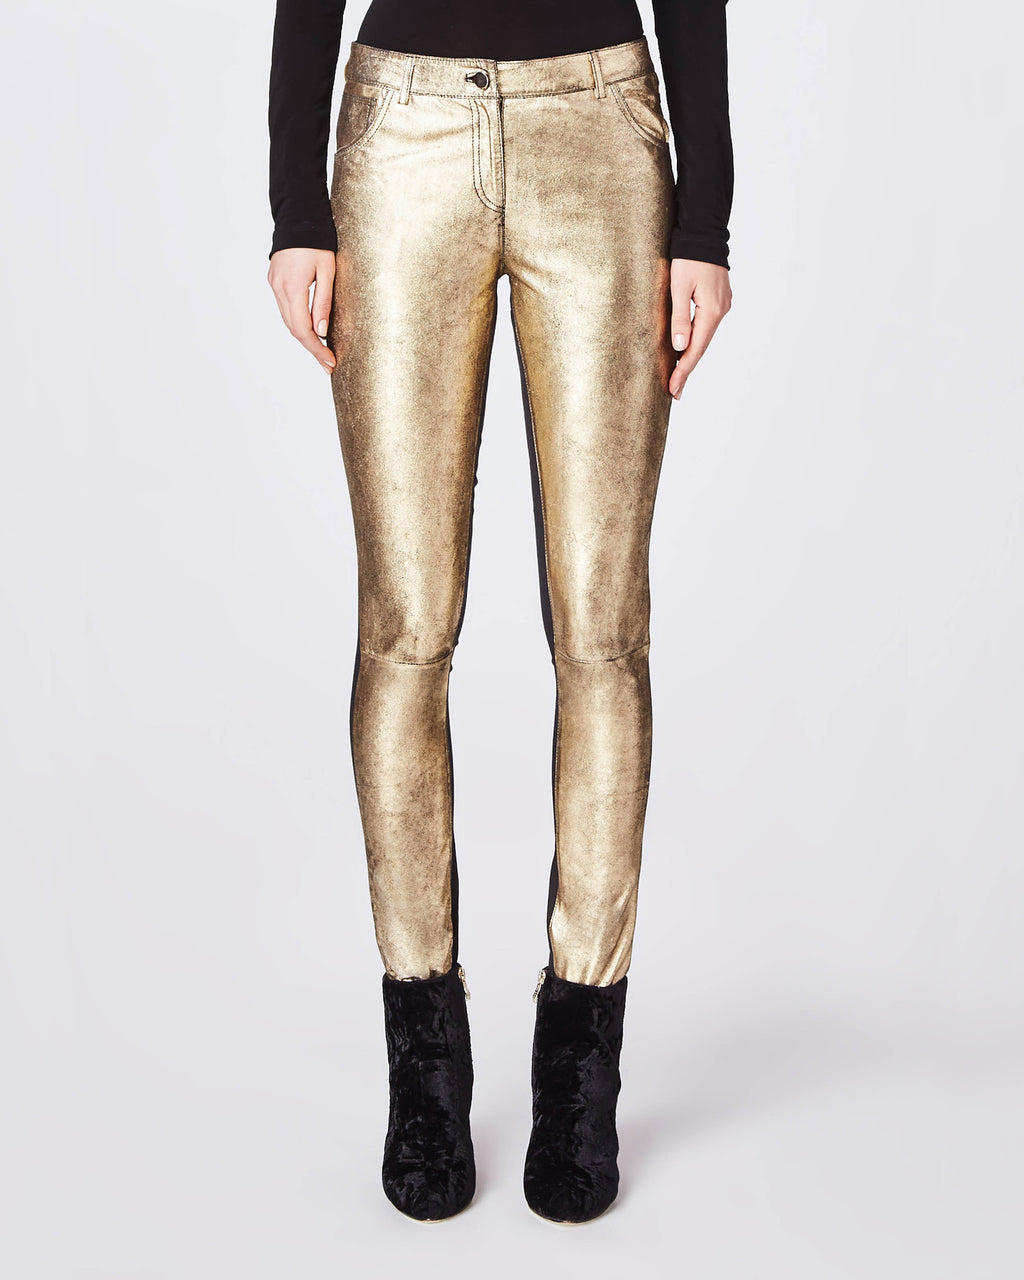 CO10120 - DISTRESSED LEATHER SKINNY PANT - bottoms - pants - This skinny pant features a 100% lamb leather front with stretch denim back.